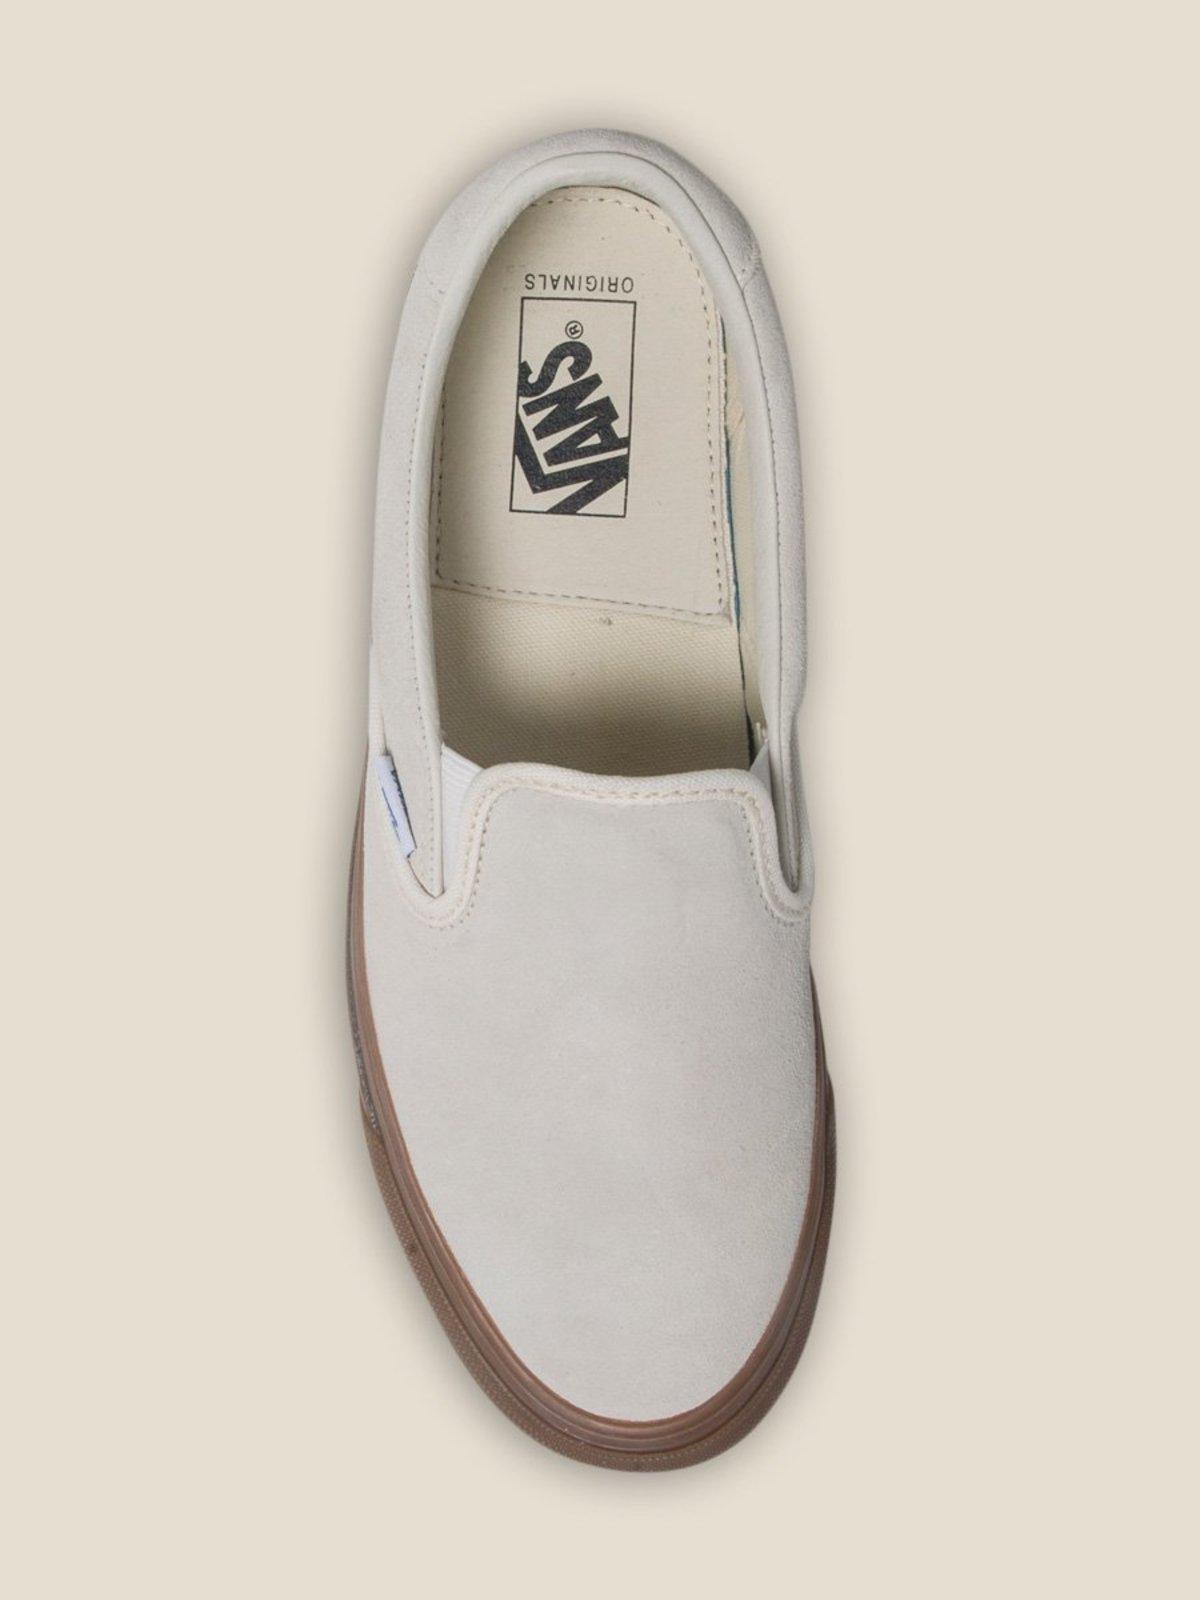 381f5918430 VANS VAULT OG Slip-On 59 LX (Suede) - Sugar Swizzle Light Gum ...